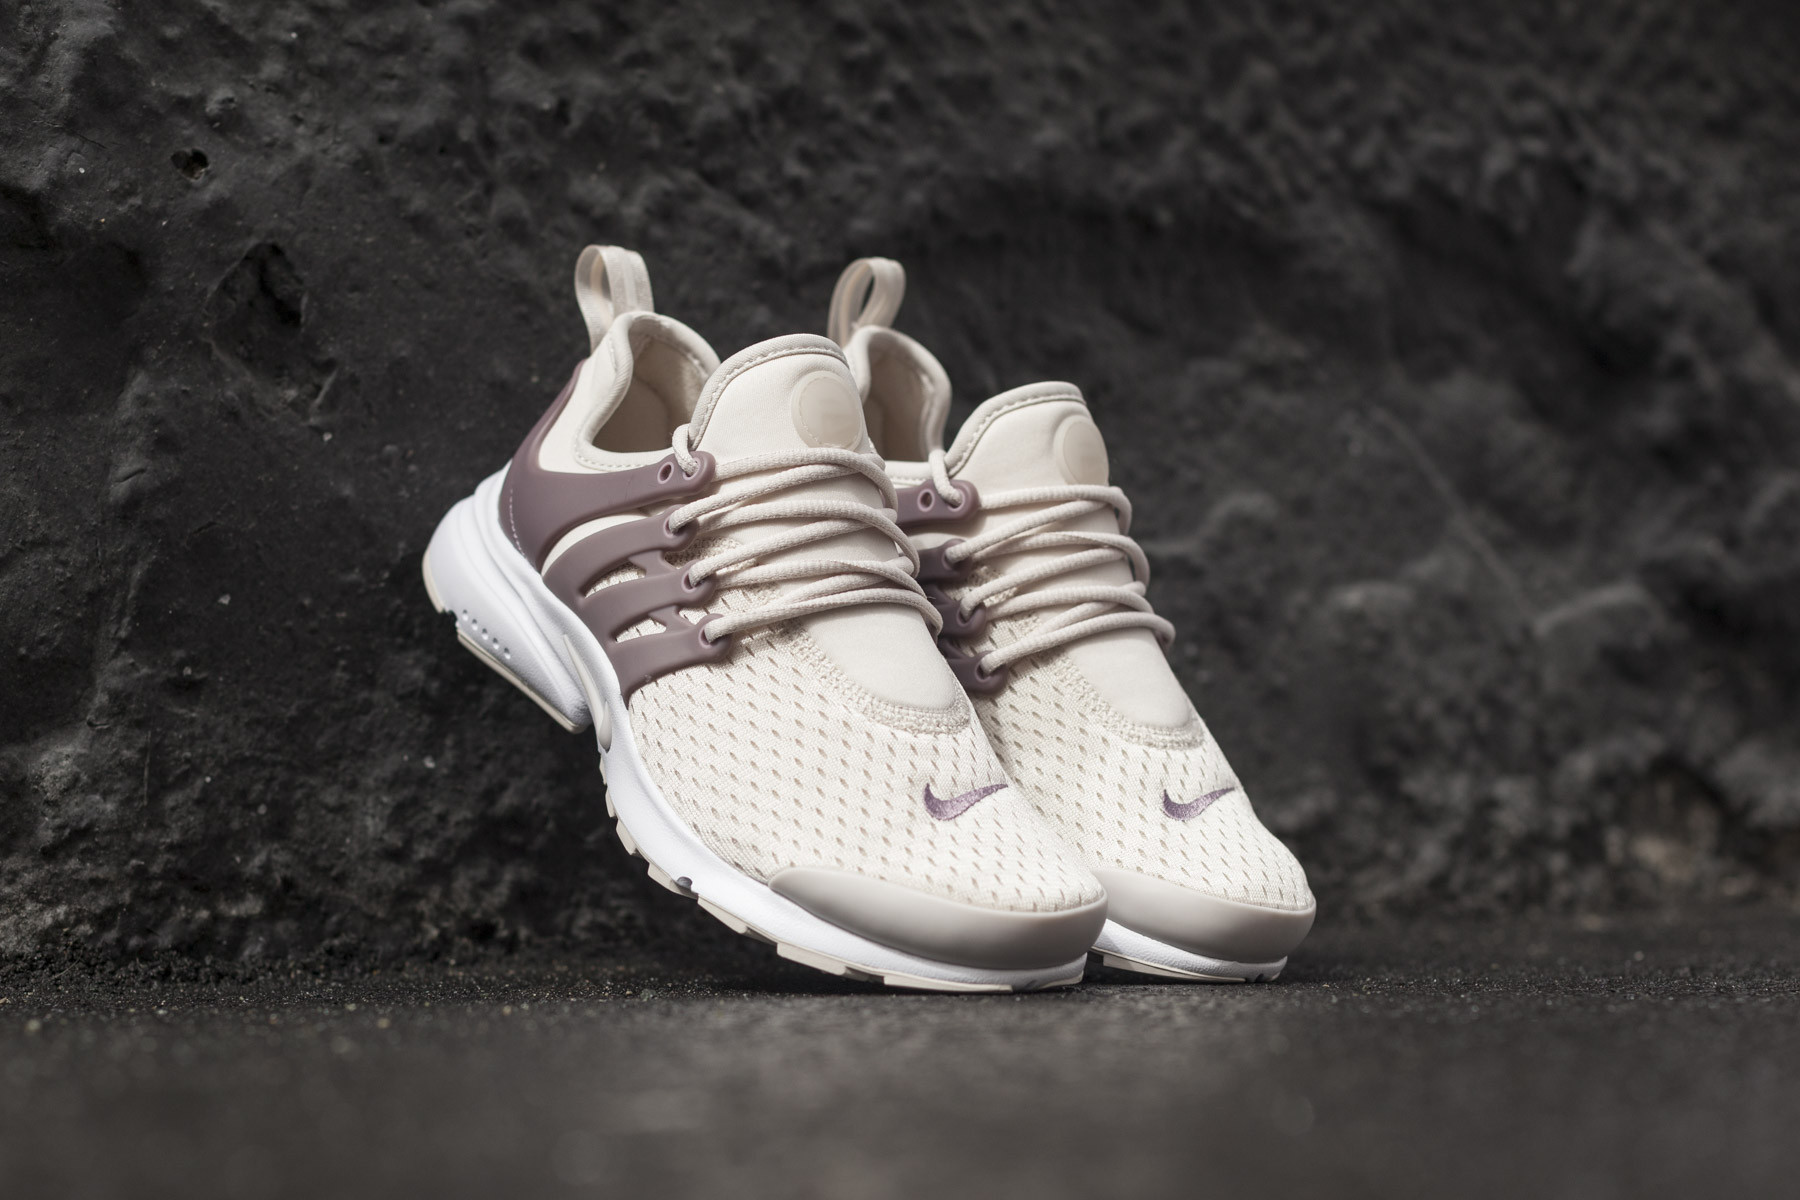 nike air presto light orewood brown 878068 102